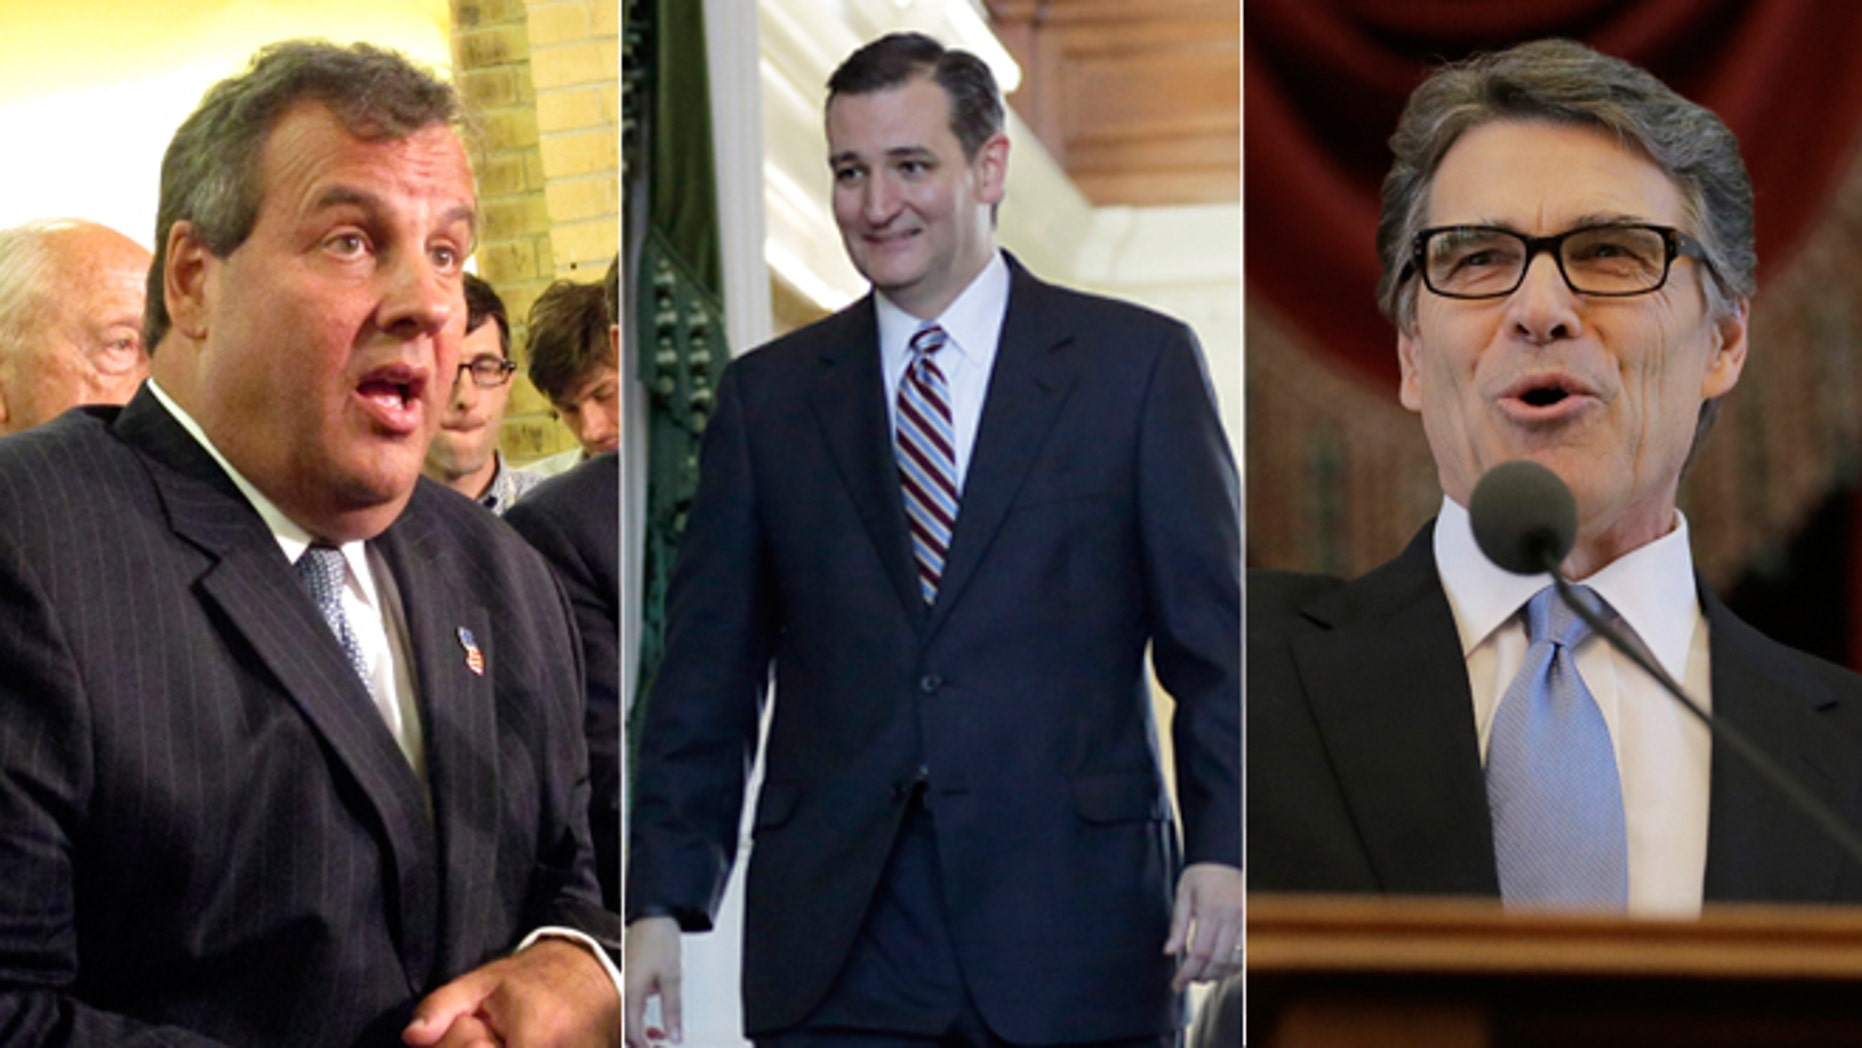 Shown here are New Jersey Gov. Chris Christie, left; Texas Sen. Ted Cruz, center; and former Texas Gov. Rick Perry.